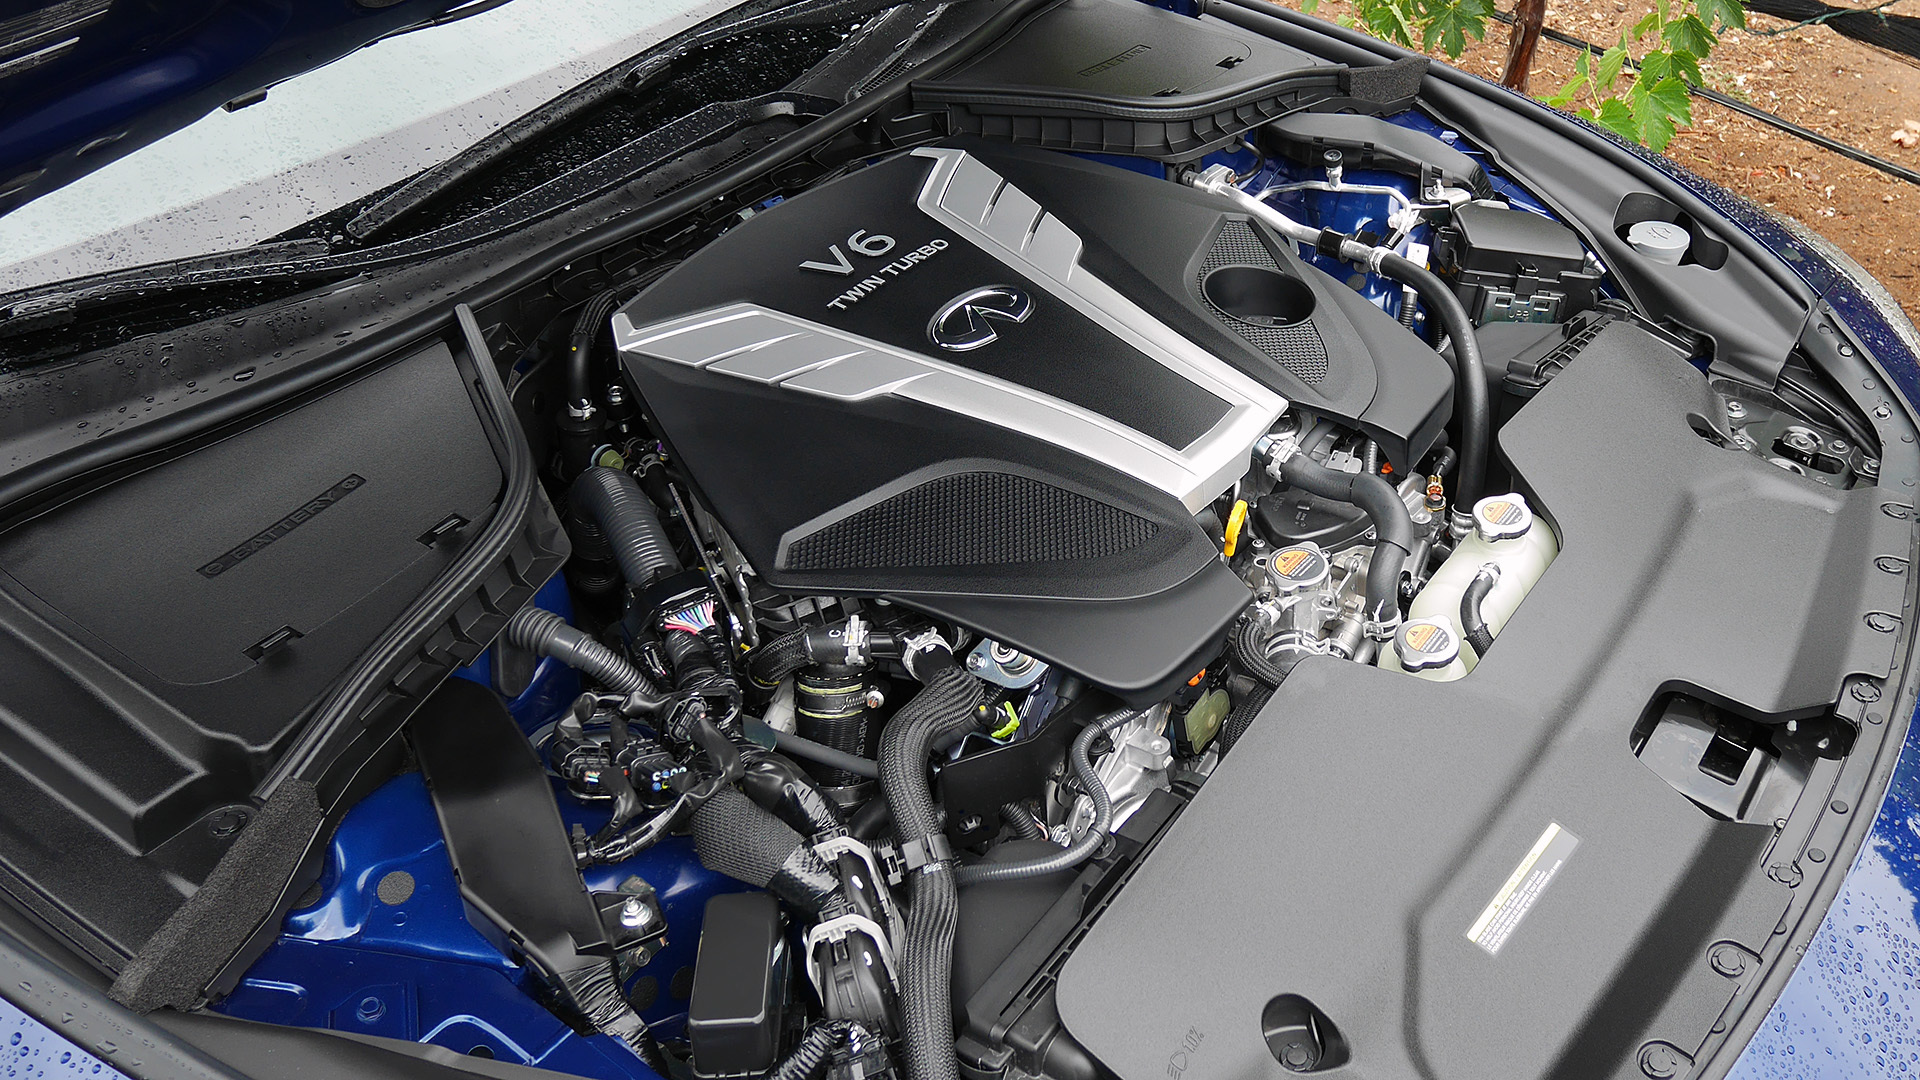 2017 Infiniti Q60 View Engine (Photo 31 of 32)